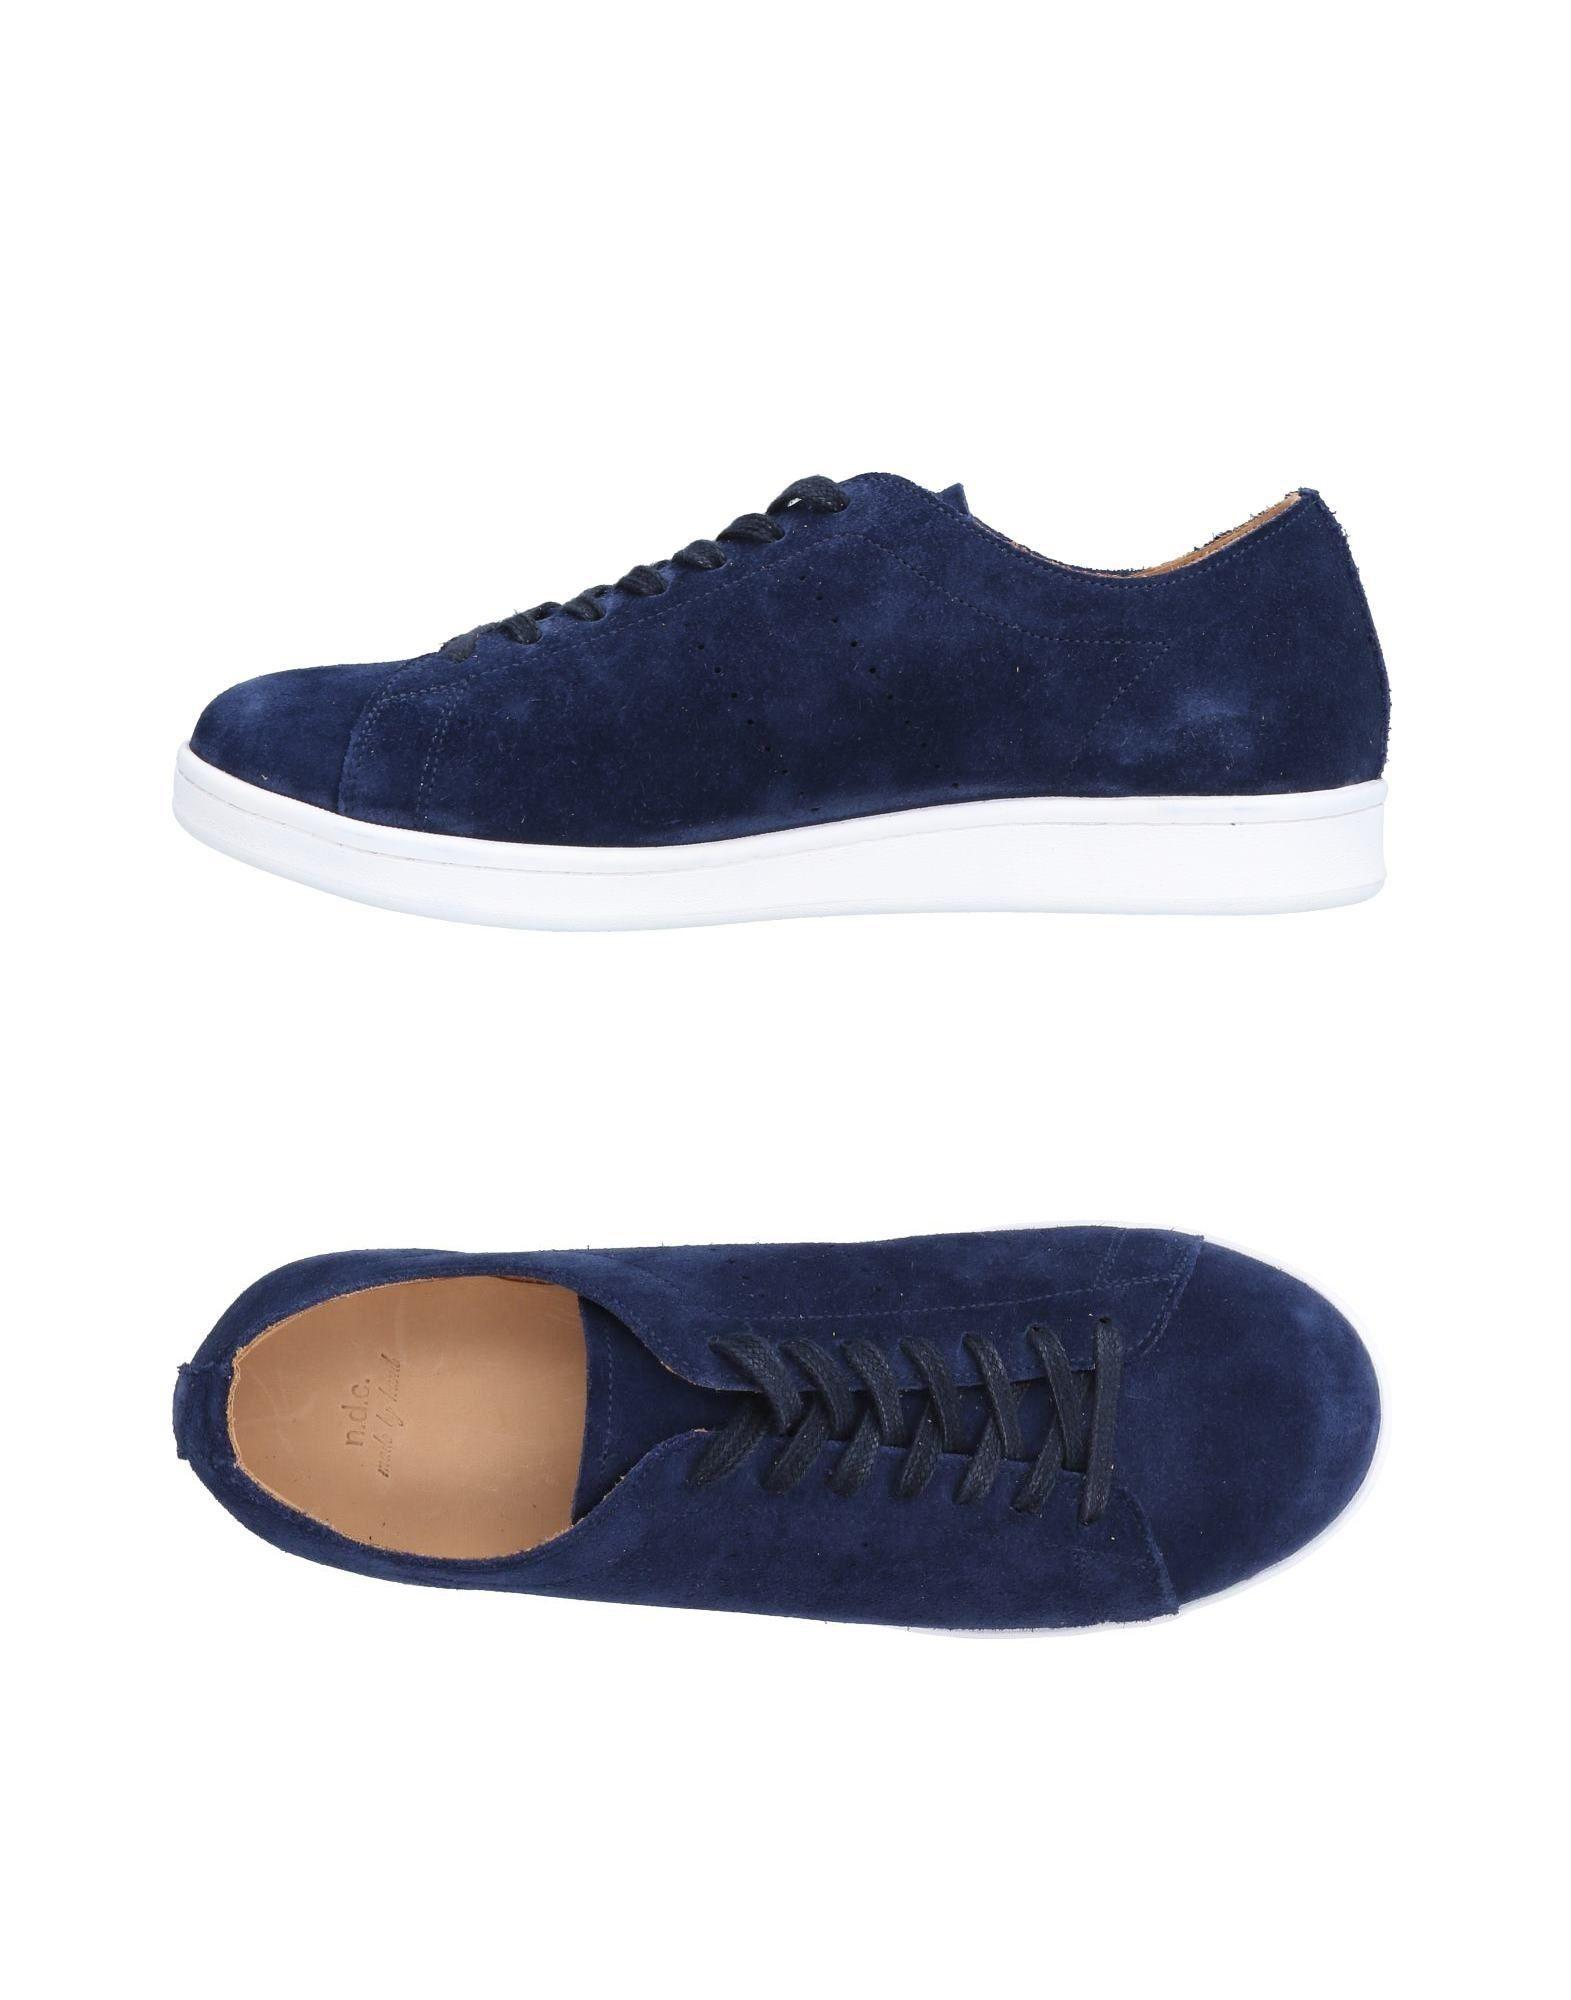 N.d.c. Sneakers In Dark Blue